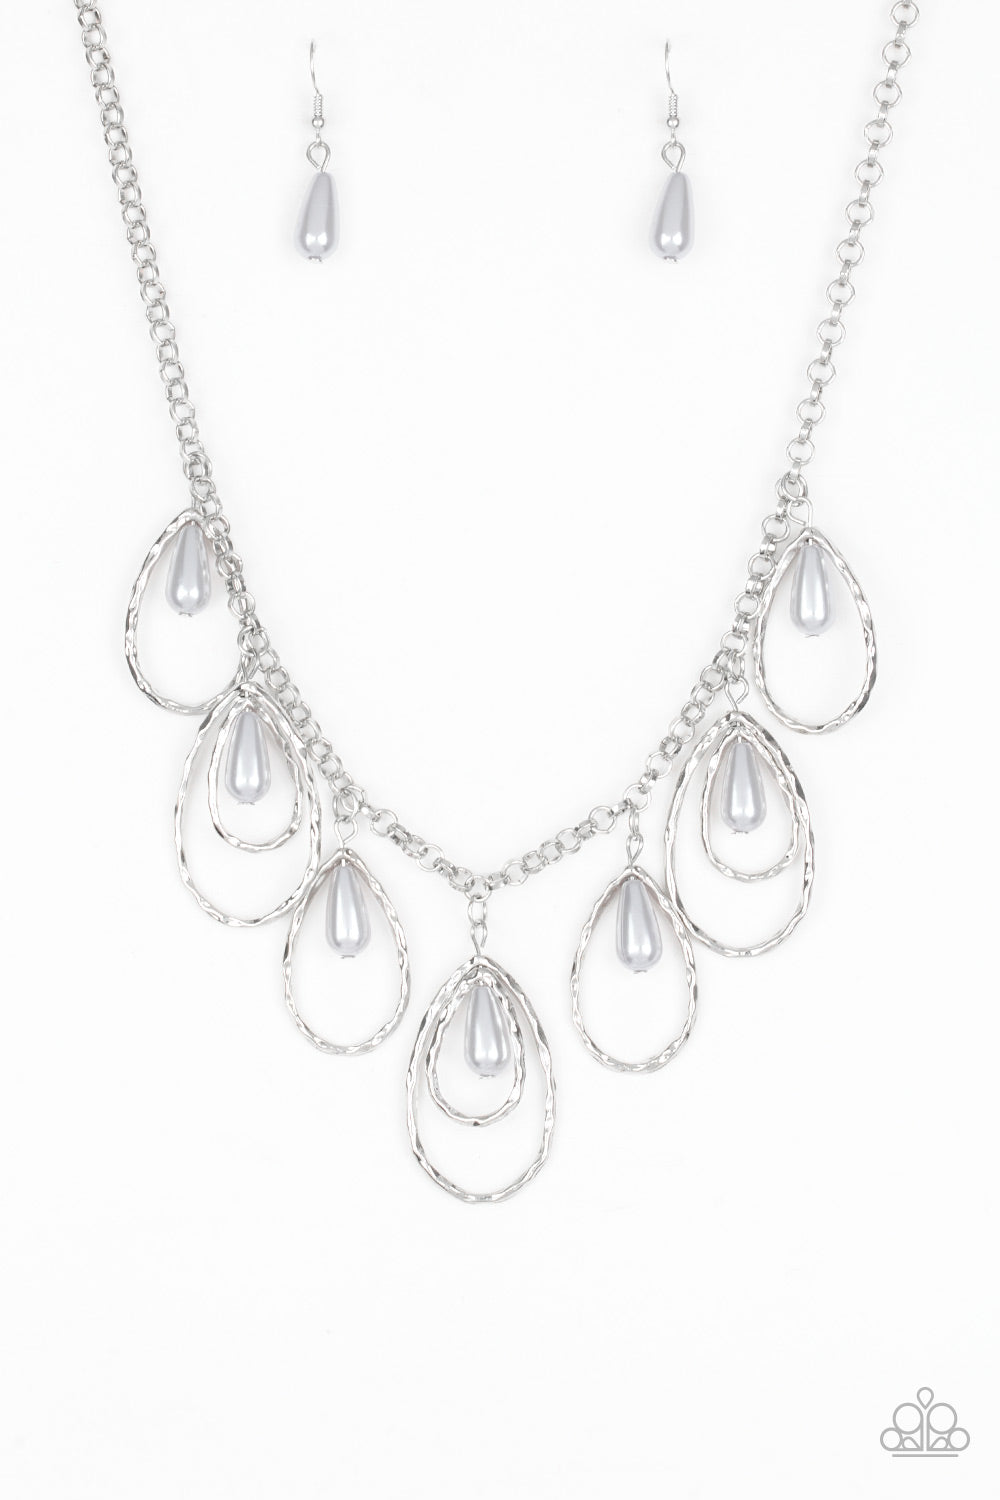 Paparazzi Accessories - Rustic Ritz - Silver Necklace Set - JMJ Jewelry Collection